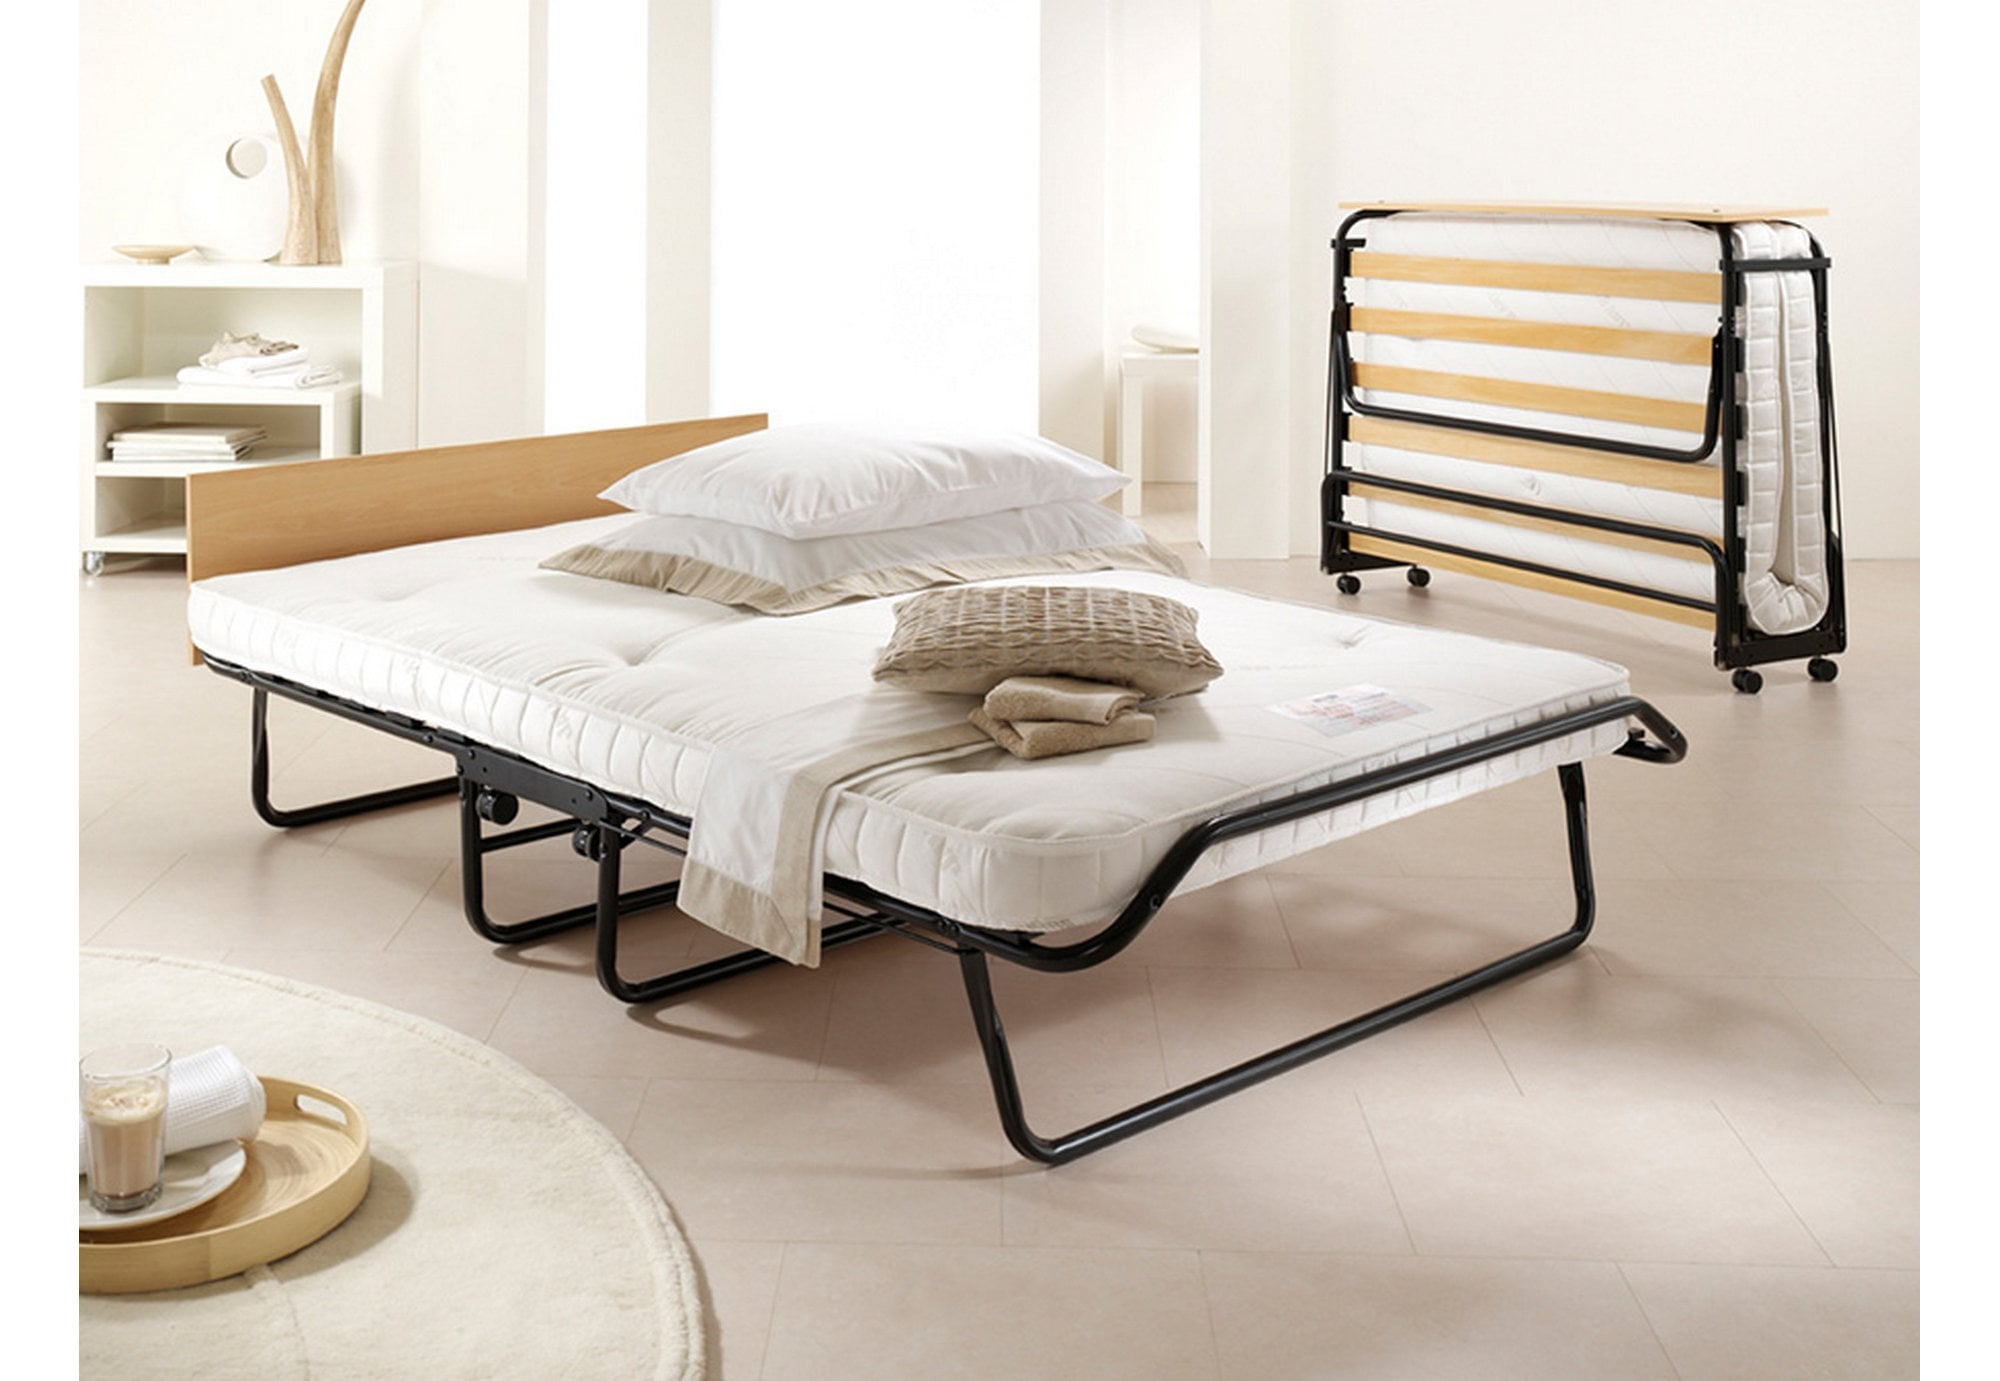 Picture of: Jay Be 4 0 Royal Pocket Sprung Small Double Folding Bed Beds From Beds 4 Less Uk